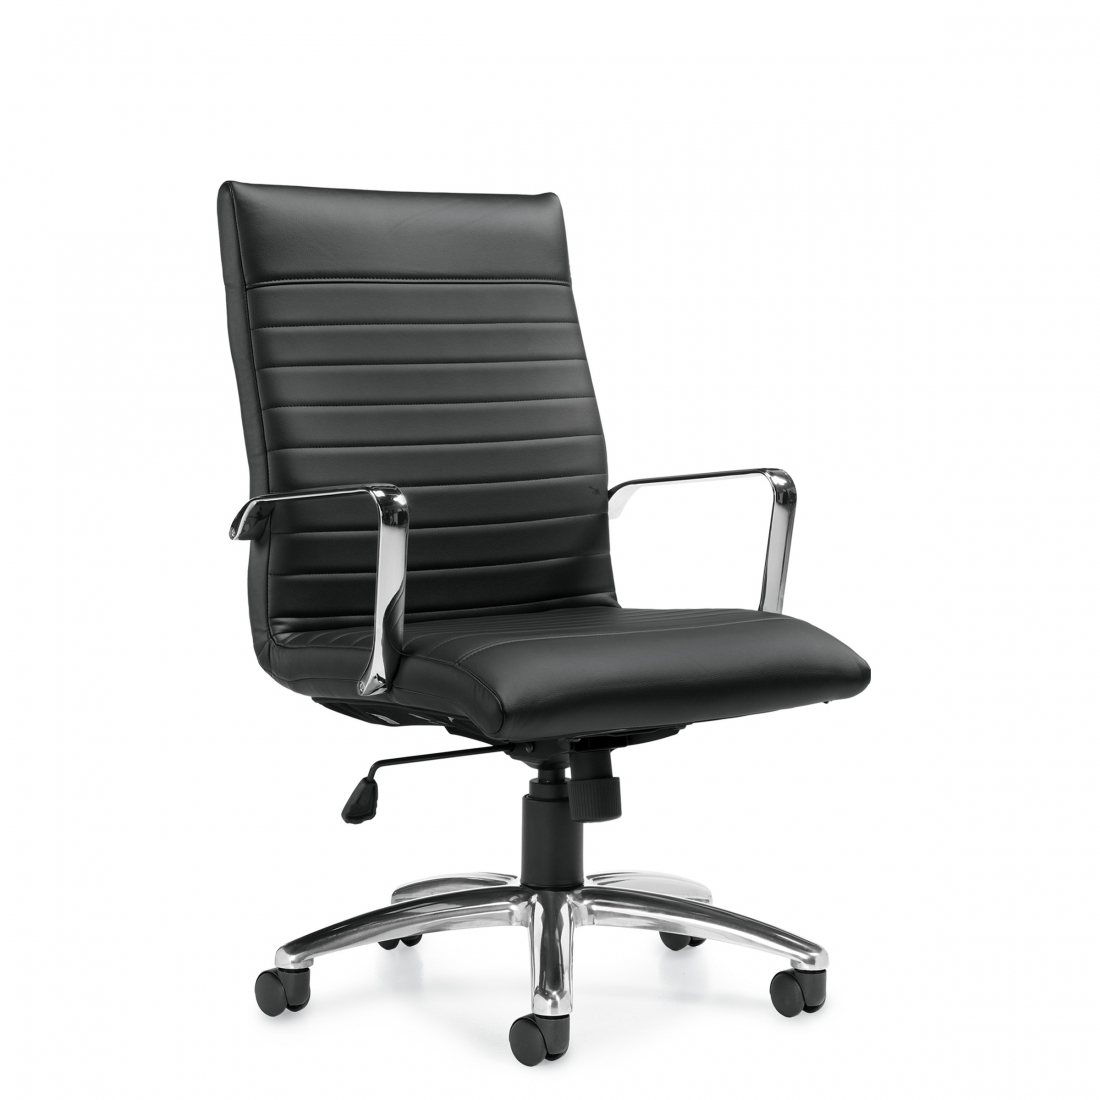 OTG Luxhide Executive Chair #OTG11730B